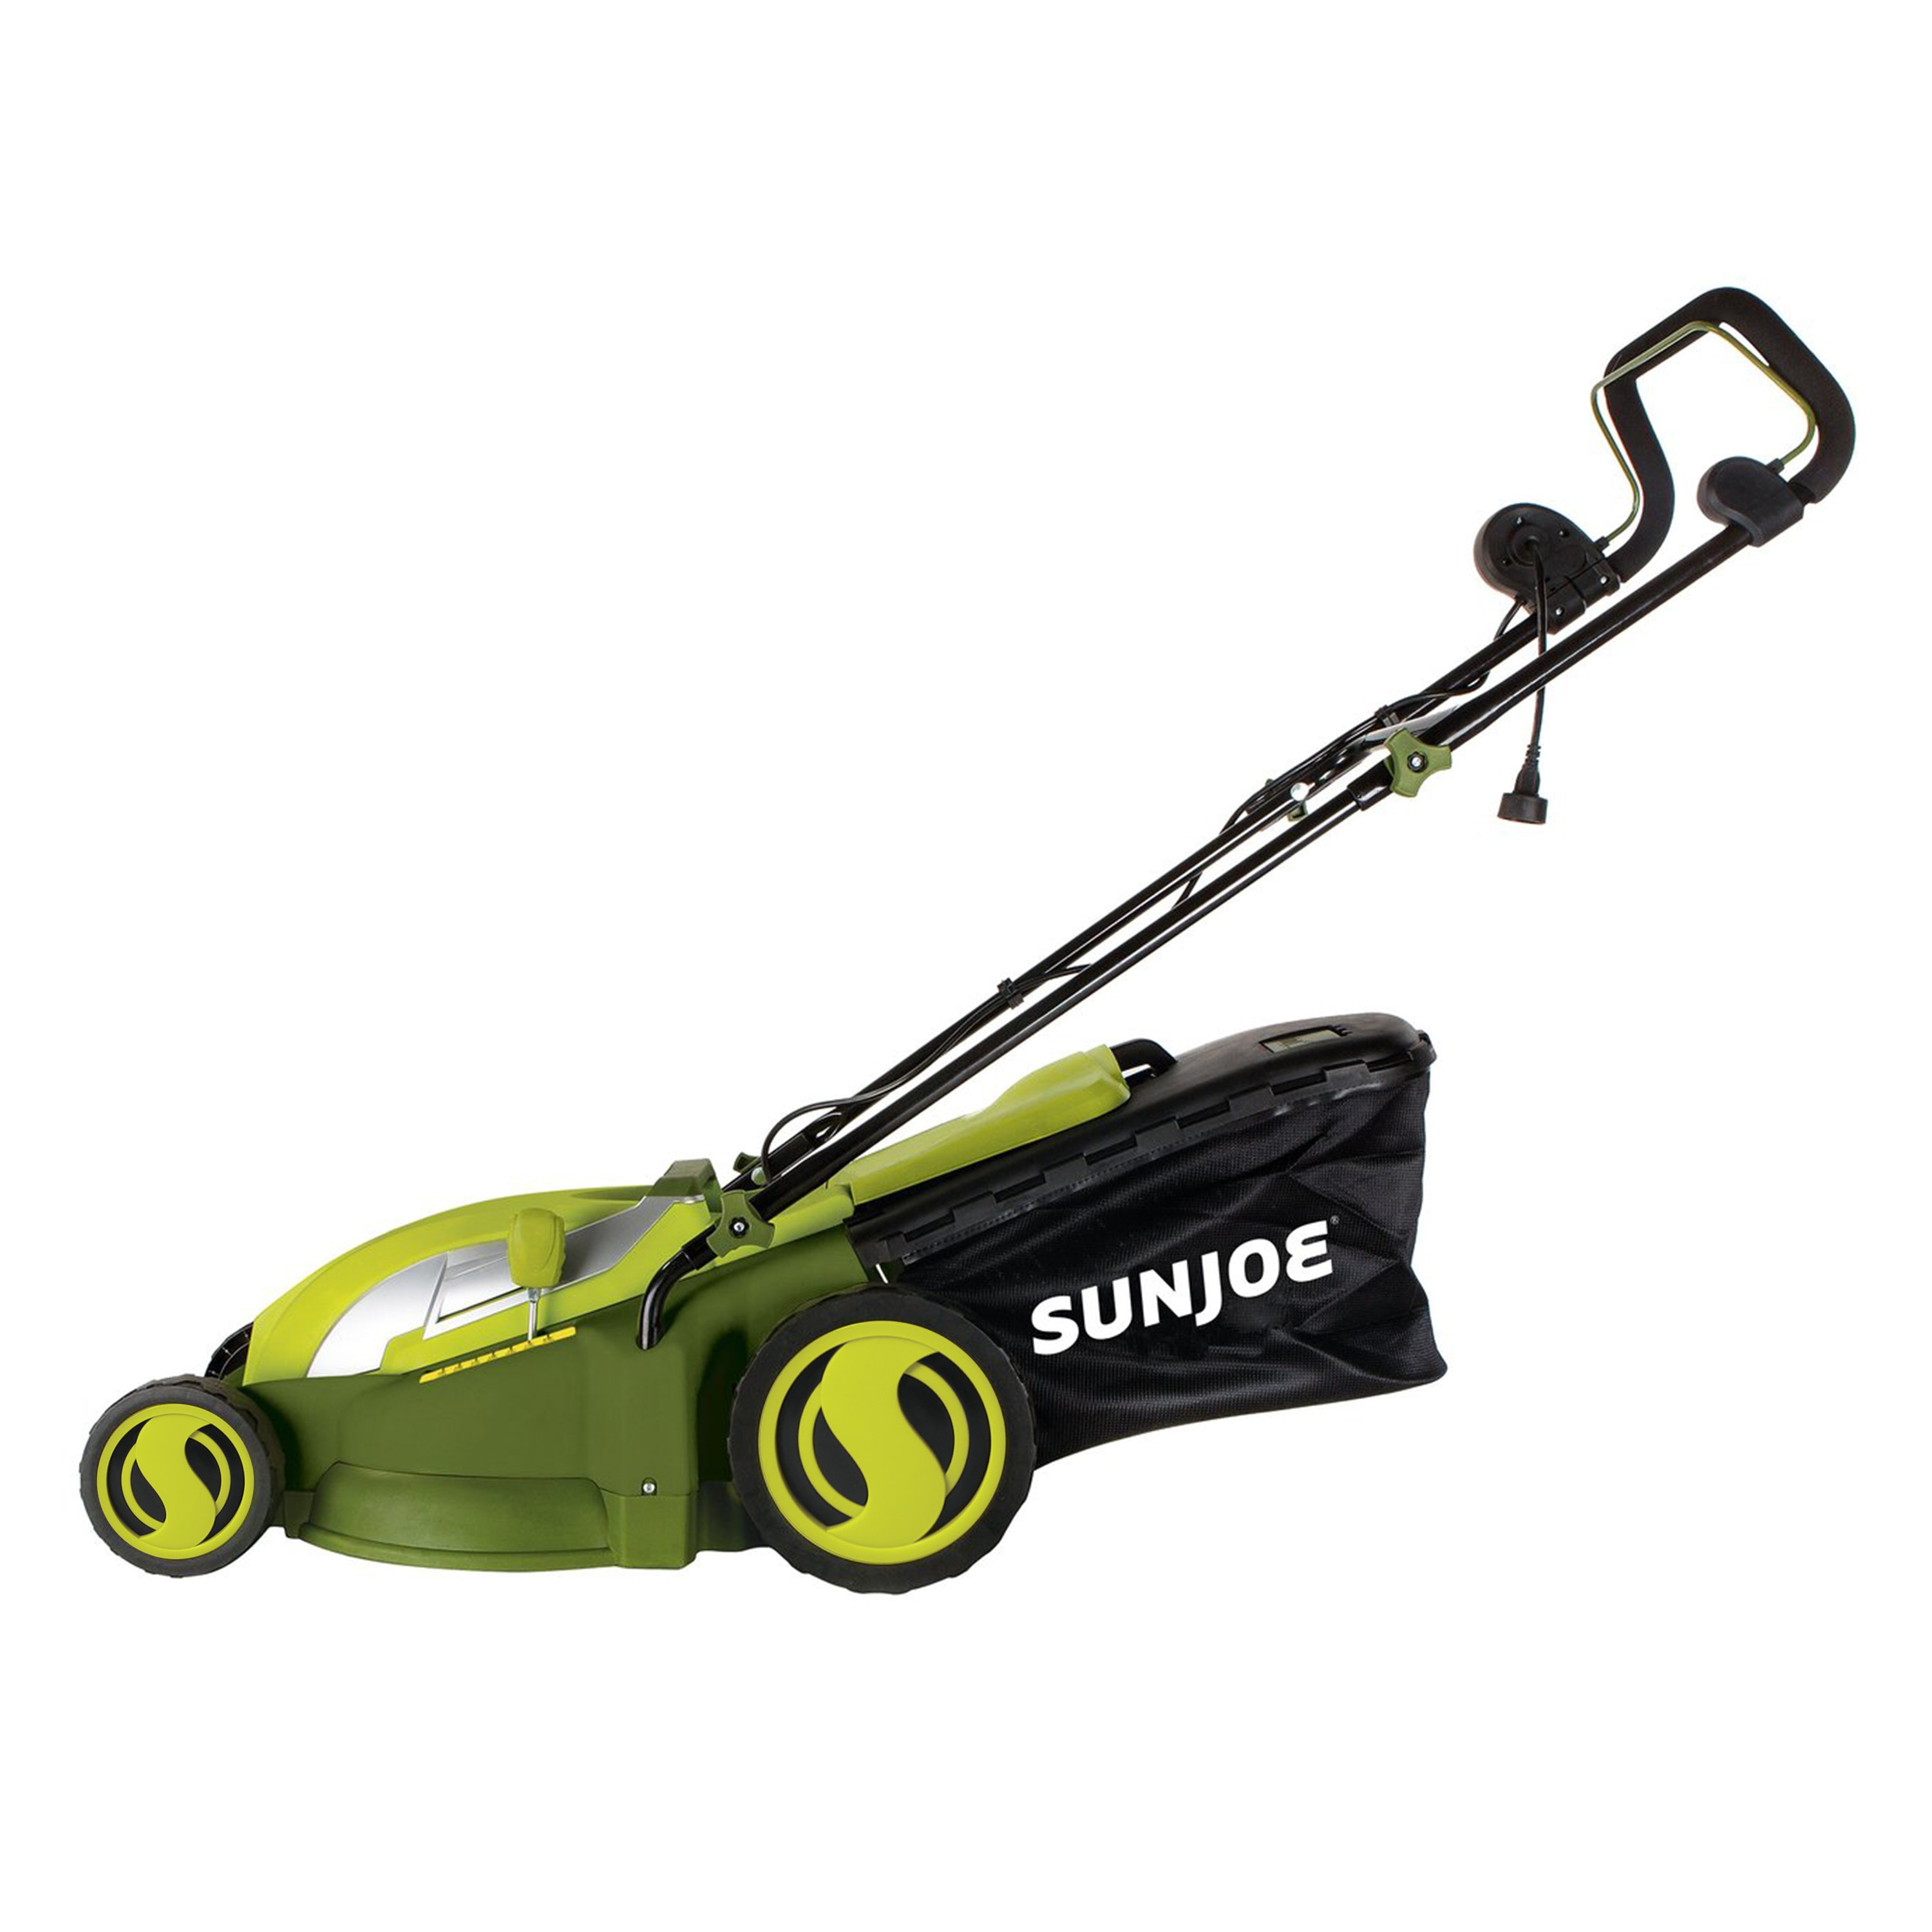 5 Factors A Traveling Mower quiet lawn mower Ideal Plow Is definitely A Awful Idea